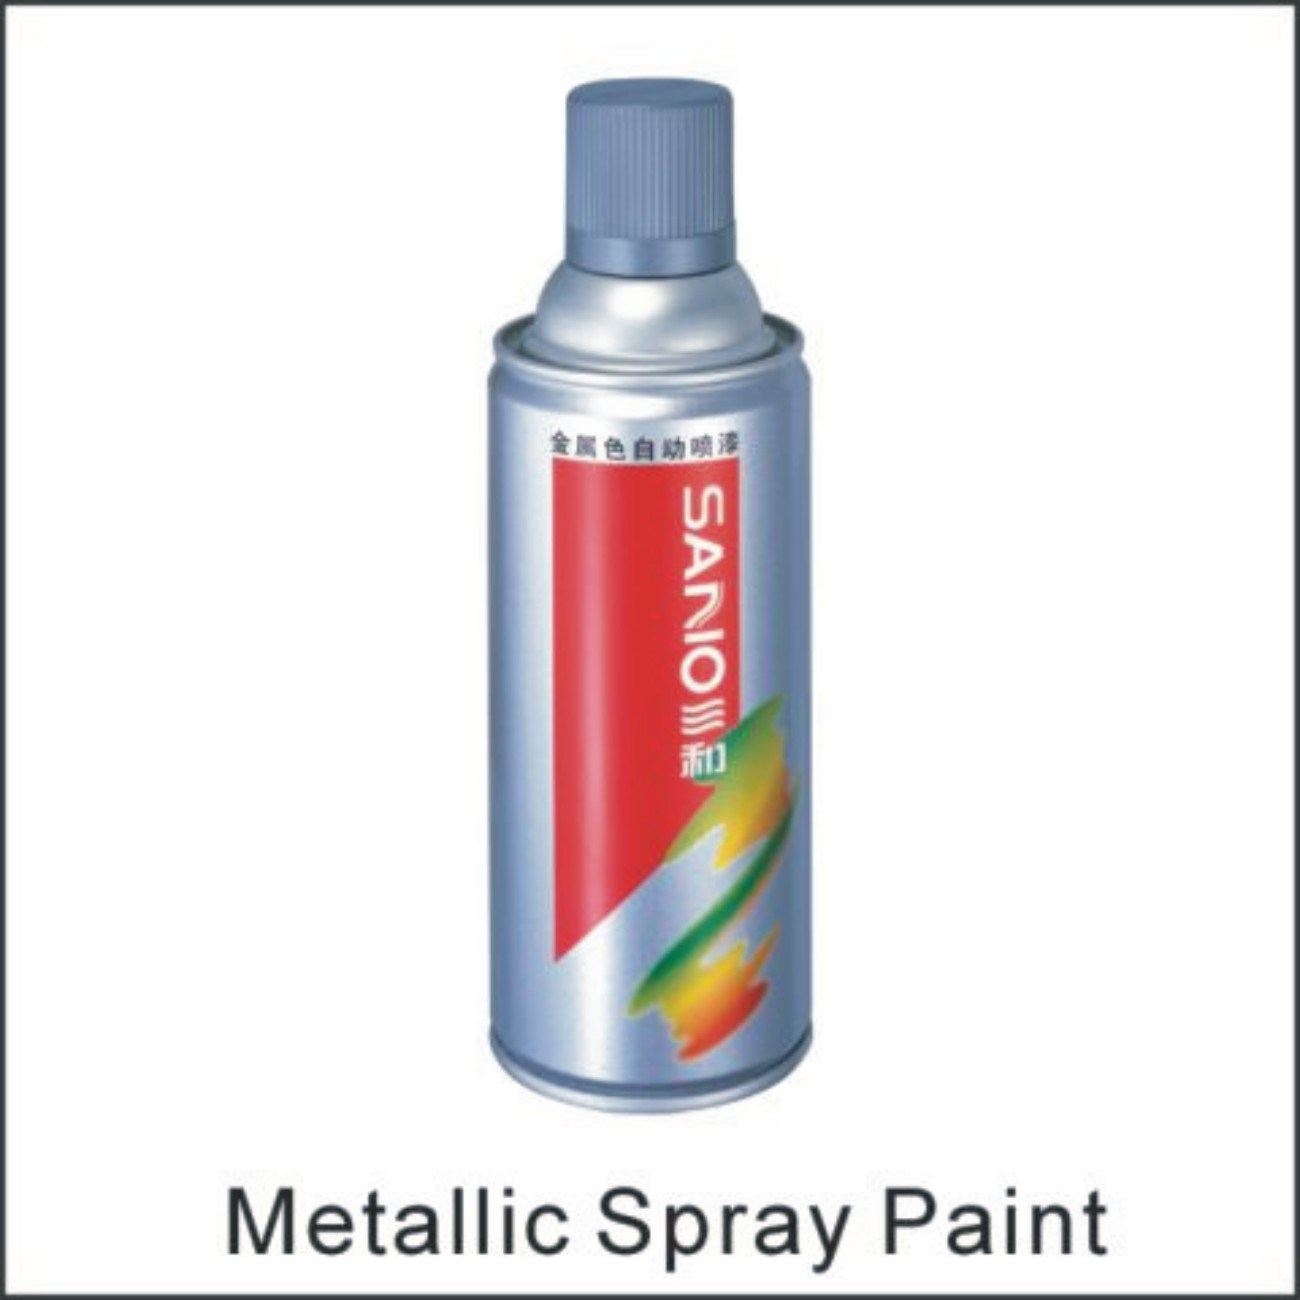 China Metallic Spray Paint China Metallic Paint Metallic Coating